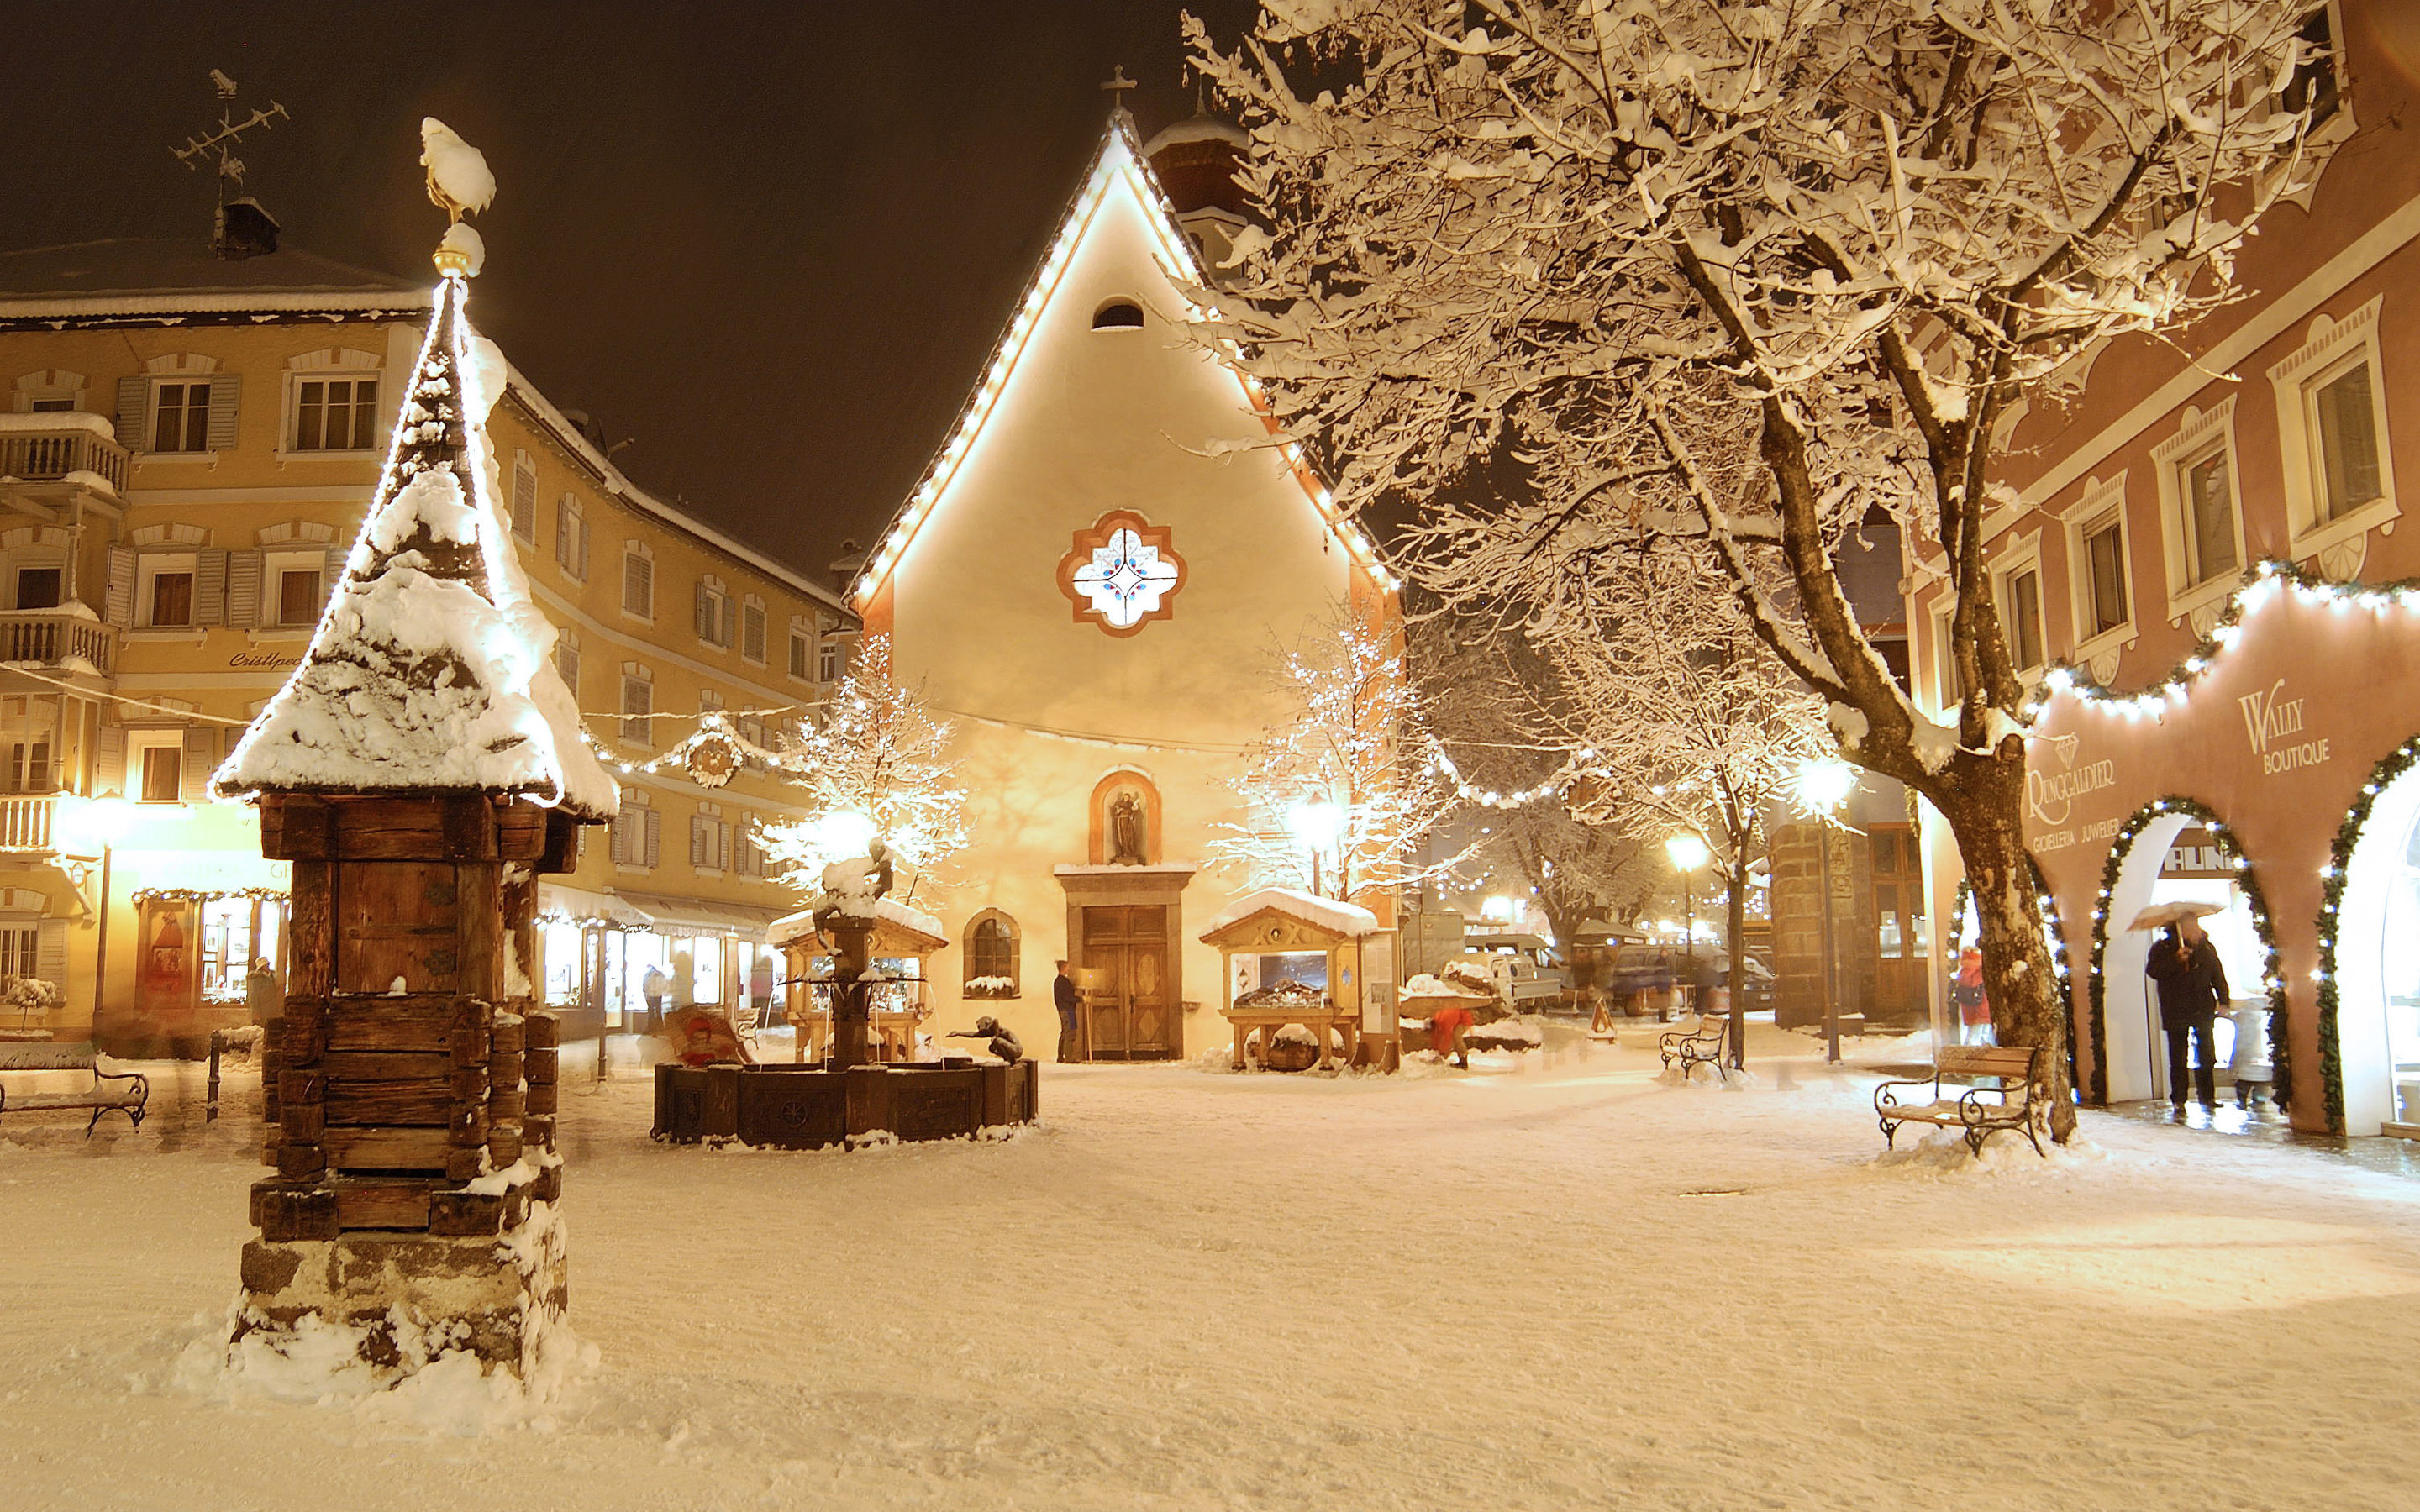 snow filled town centre - hd wallpapers